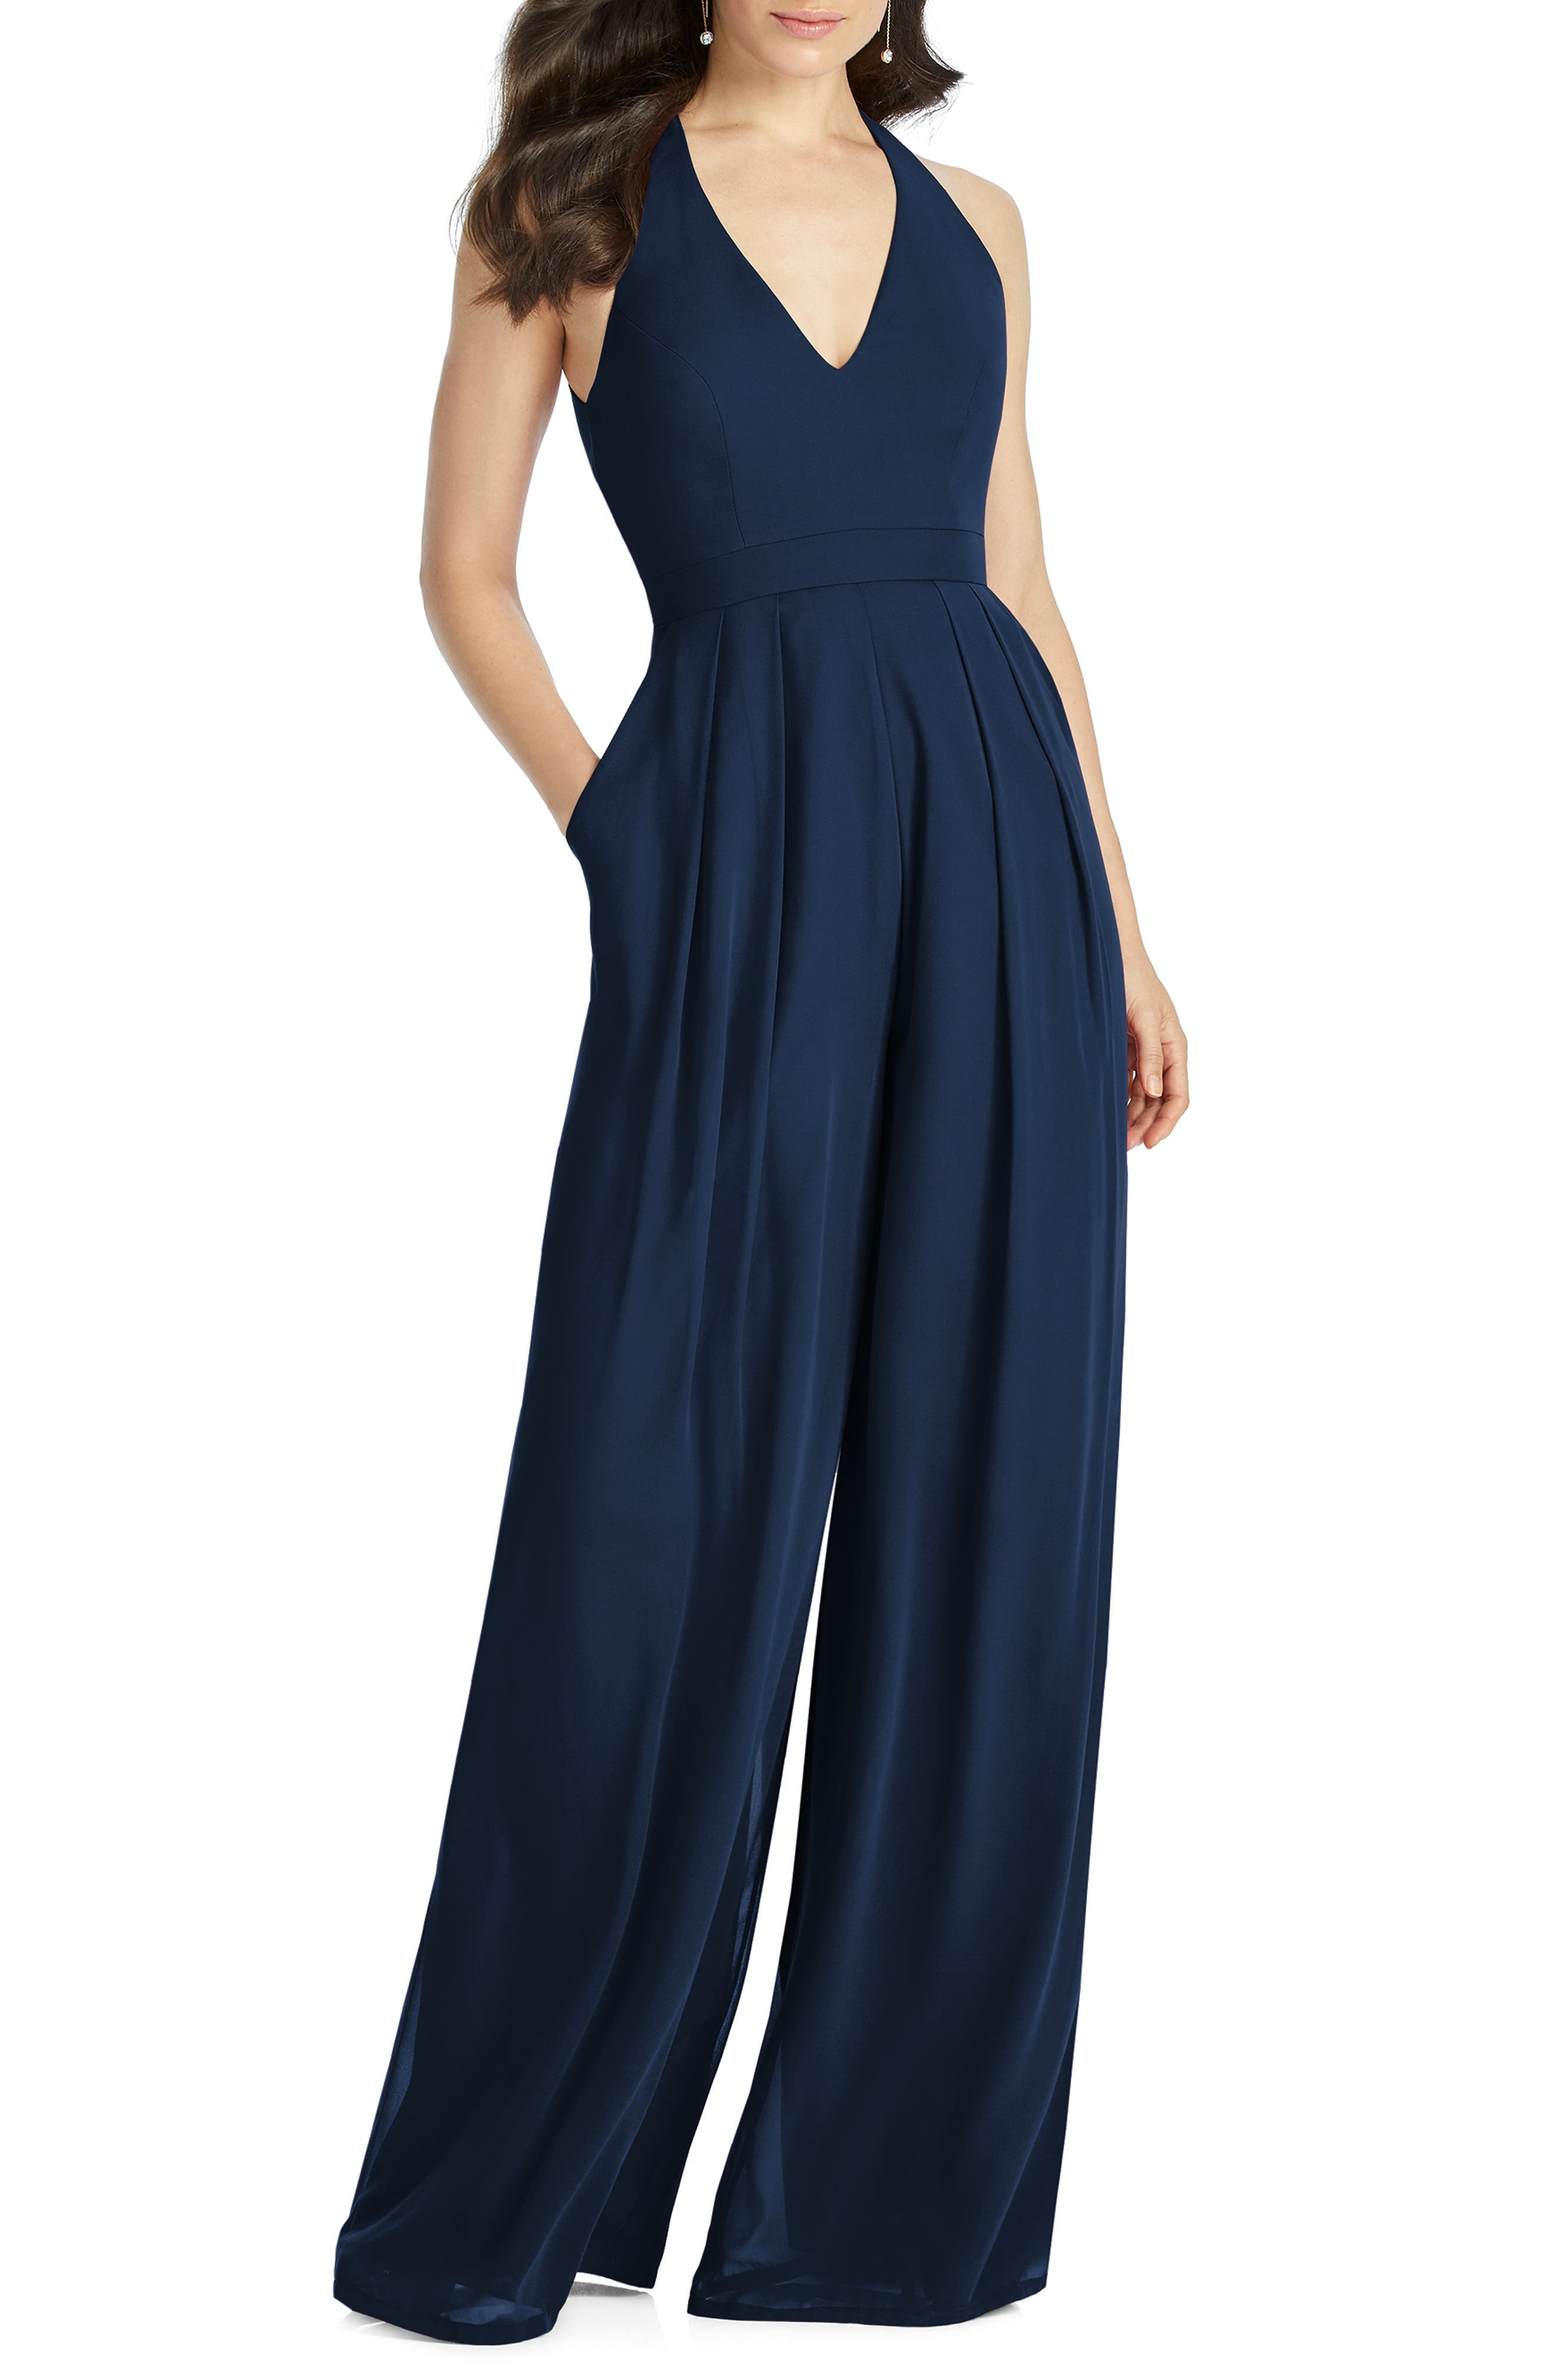 A winning option for formalwear with less fuss, this chiffon jumpsuit features a chic back cutout as well as wide legs and a pleated front for a flowing look. Style Name: Dessy Collection Arielle V-Neck Lux Chiffon Jumpsuit. Style Number: 5793218. Available in stores.